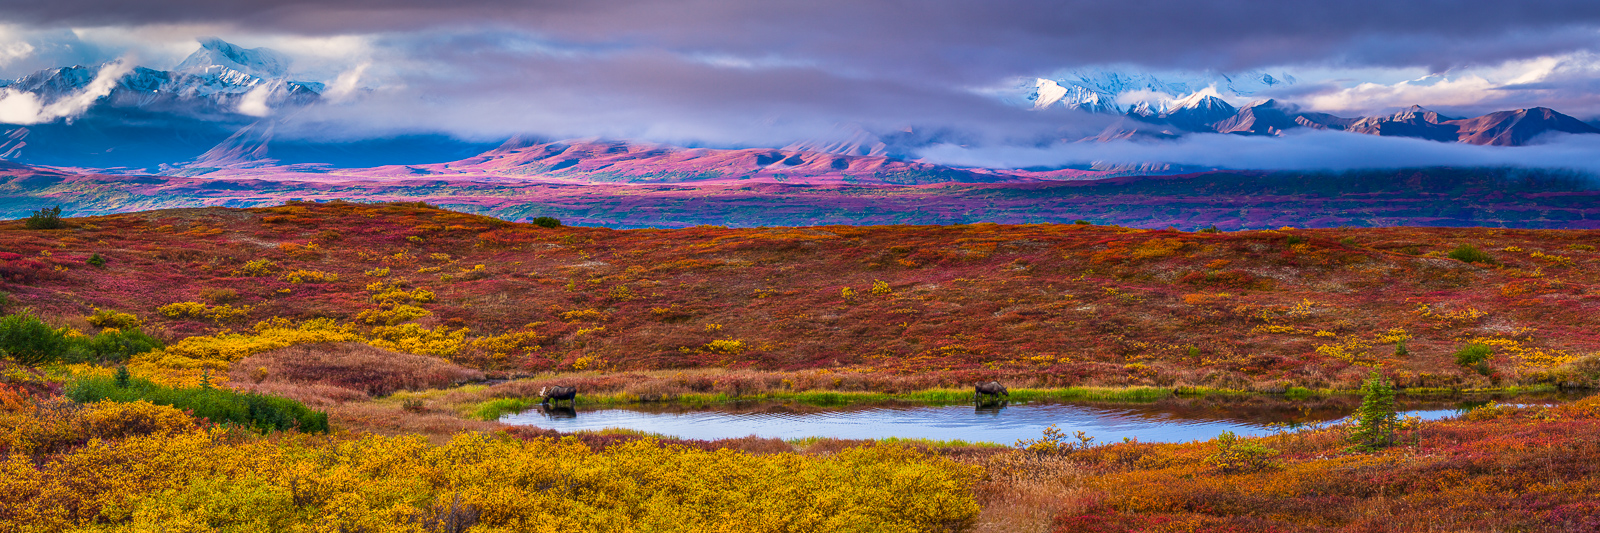 Autumn Peaks at Denali, Fall, Moose, Wildlife, Denali National Park, Alaska, Bull, Cow, Pond, Tundra, Foliage, photo